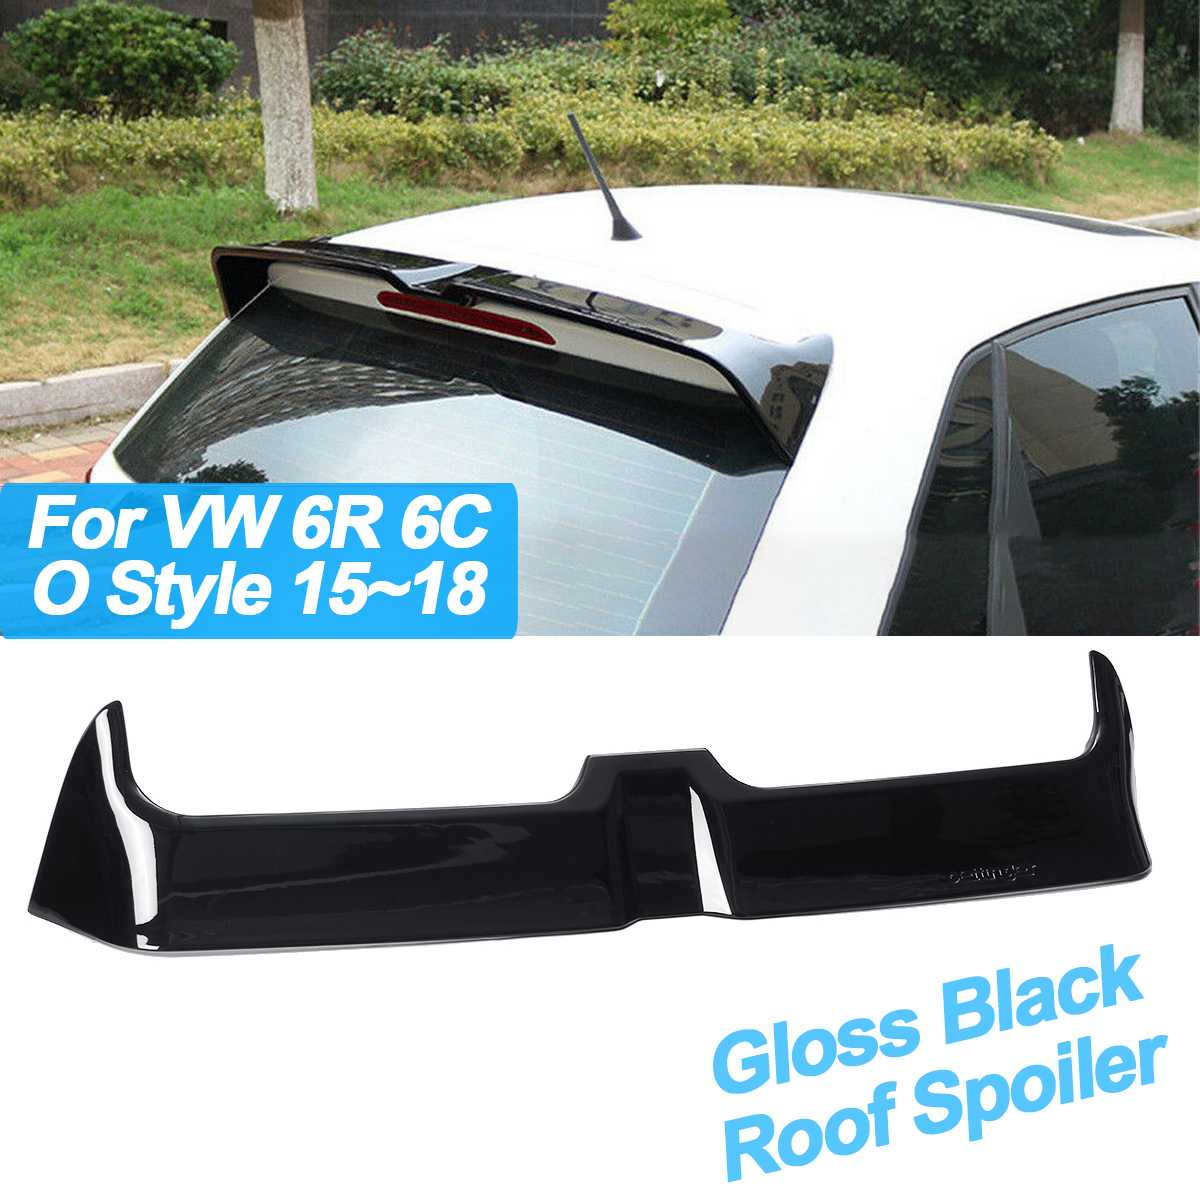 ABS Gloss Black Rear Trunk Roof Spoiler Wing for Volkswagen 6R 6C O Style 2015-2018 Window Tail Wings BlackABS Gloss Black Rear Trunk Roof Spoiler Wing for Volkswagen 6R 6C O Style 2015-2018 Window Tail Wings Black